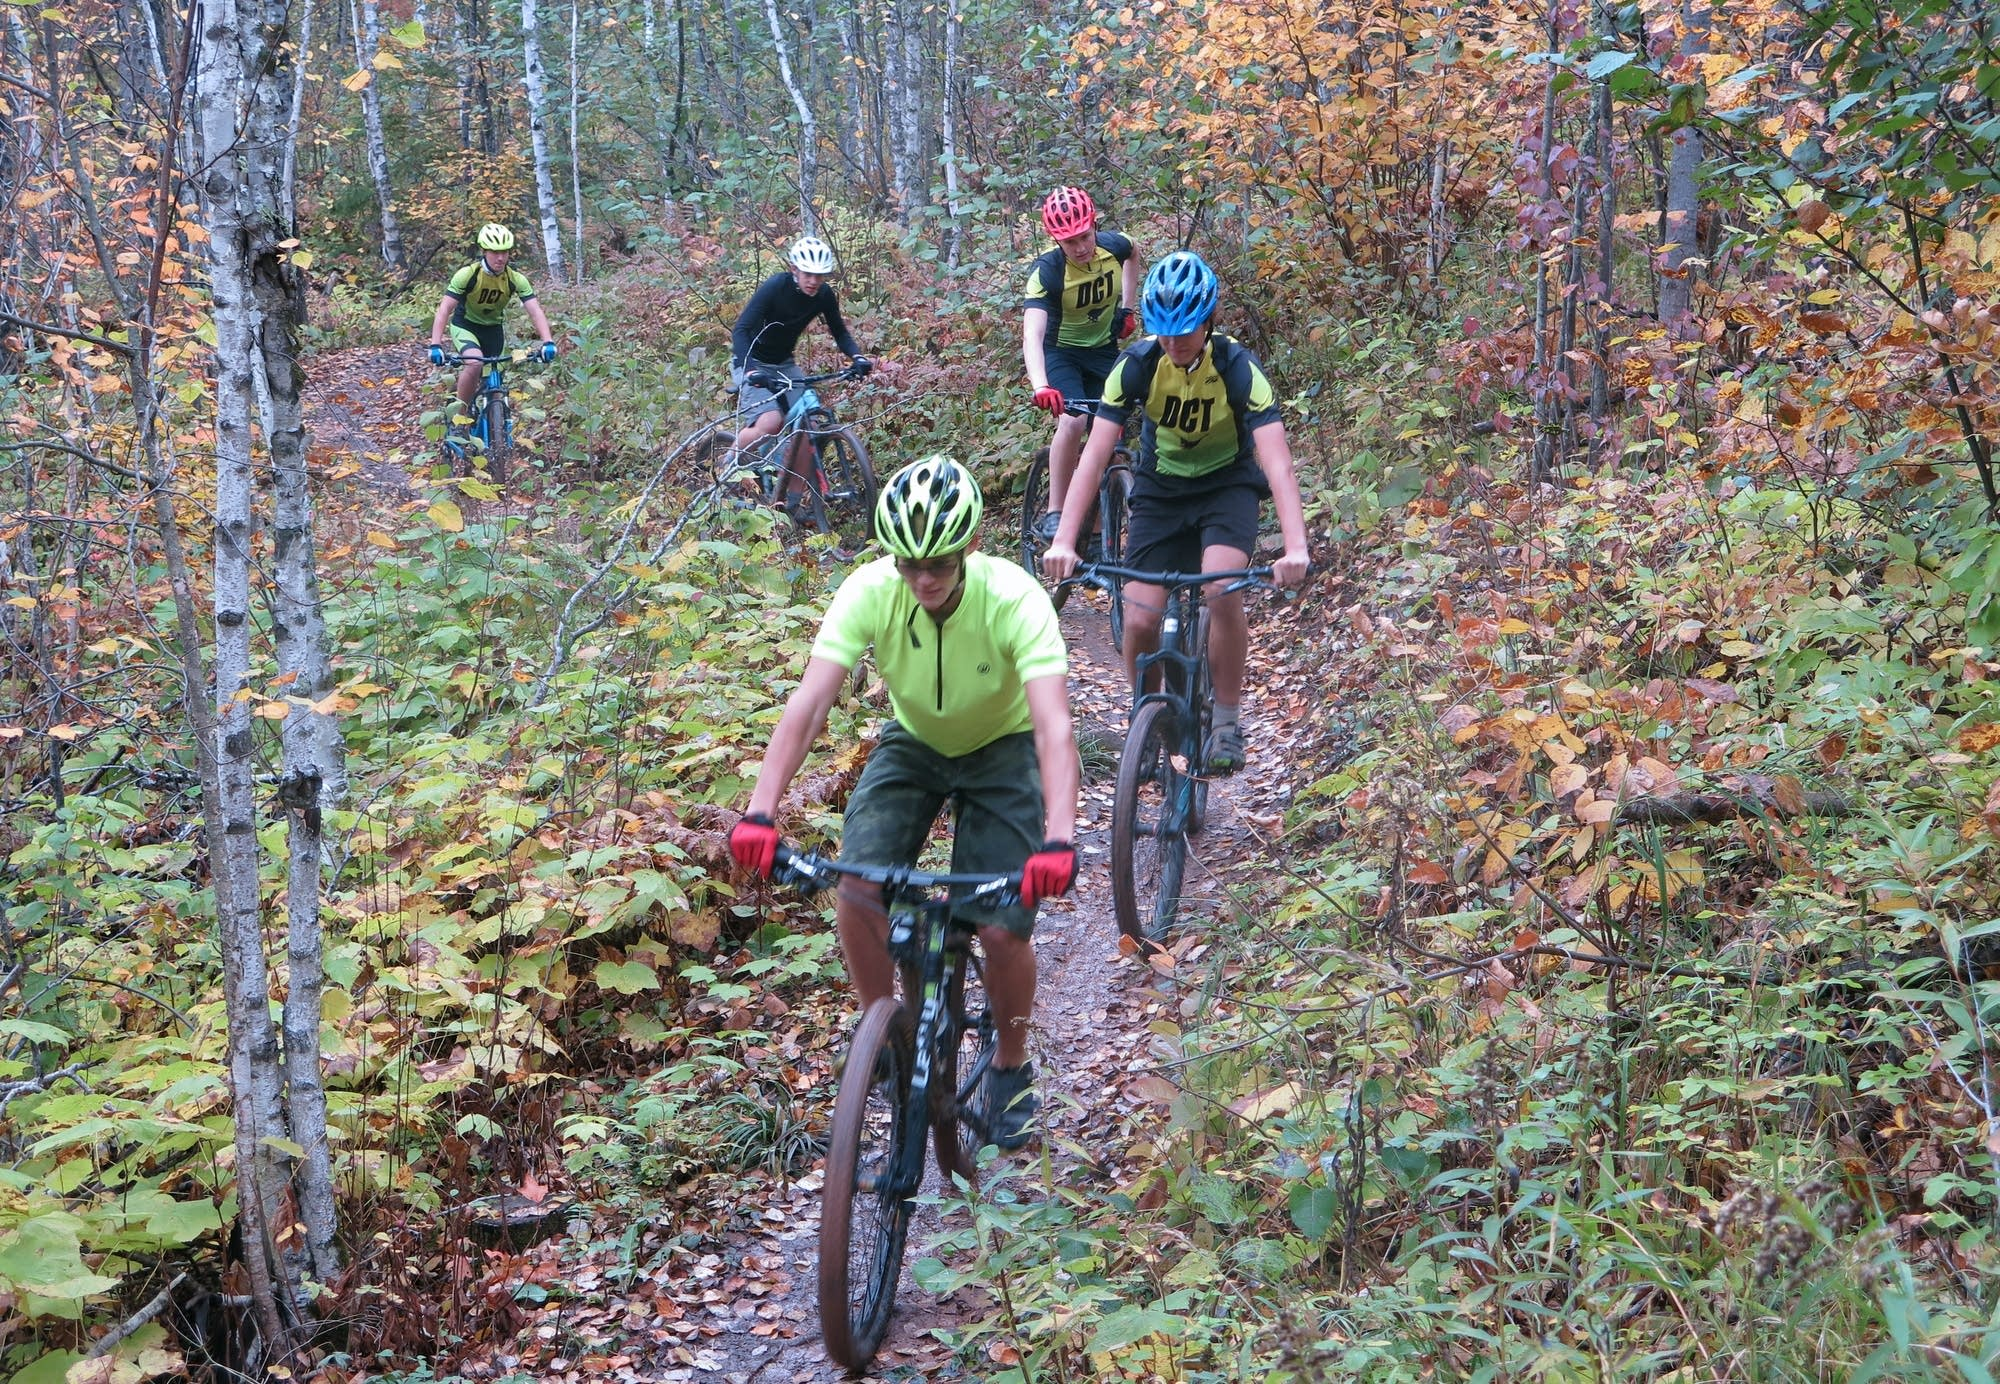 The Duluth Composite high school mountain bike team on a practice ride.